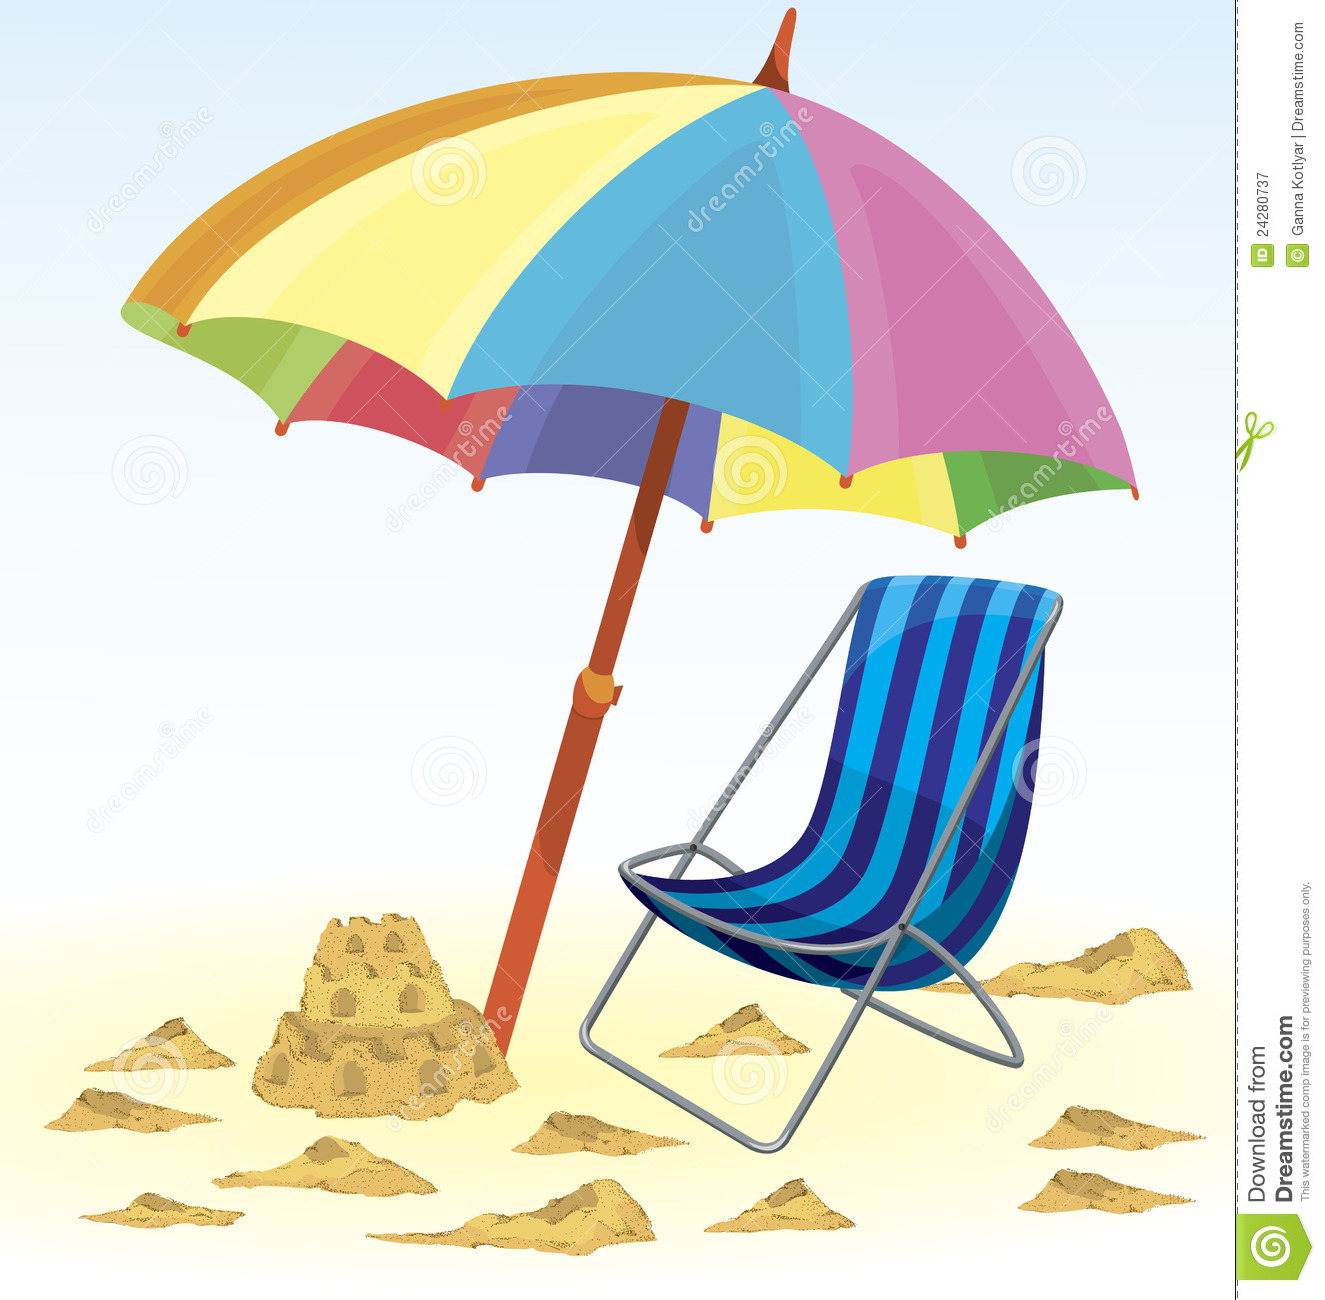 Beach chair and parasol vector illustration stock vector image - Beach Umbrella Chair Sand Castle Royalty Free Stock